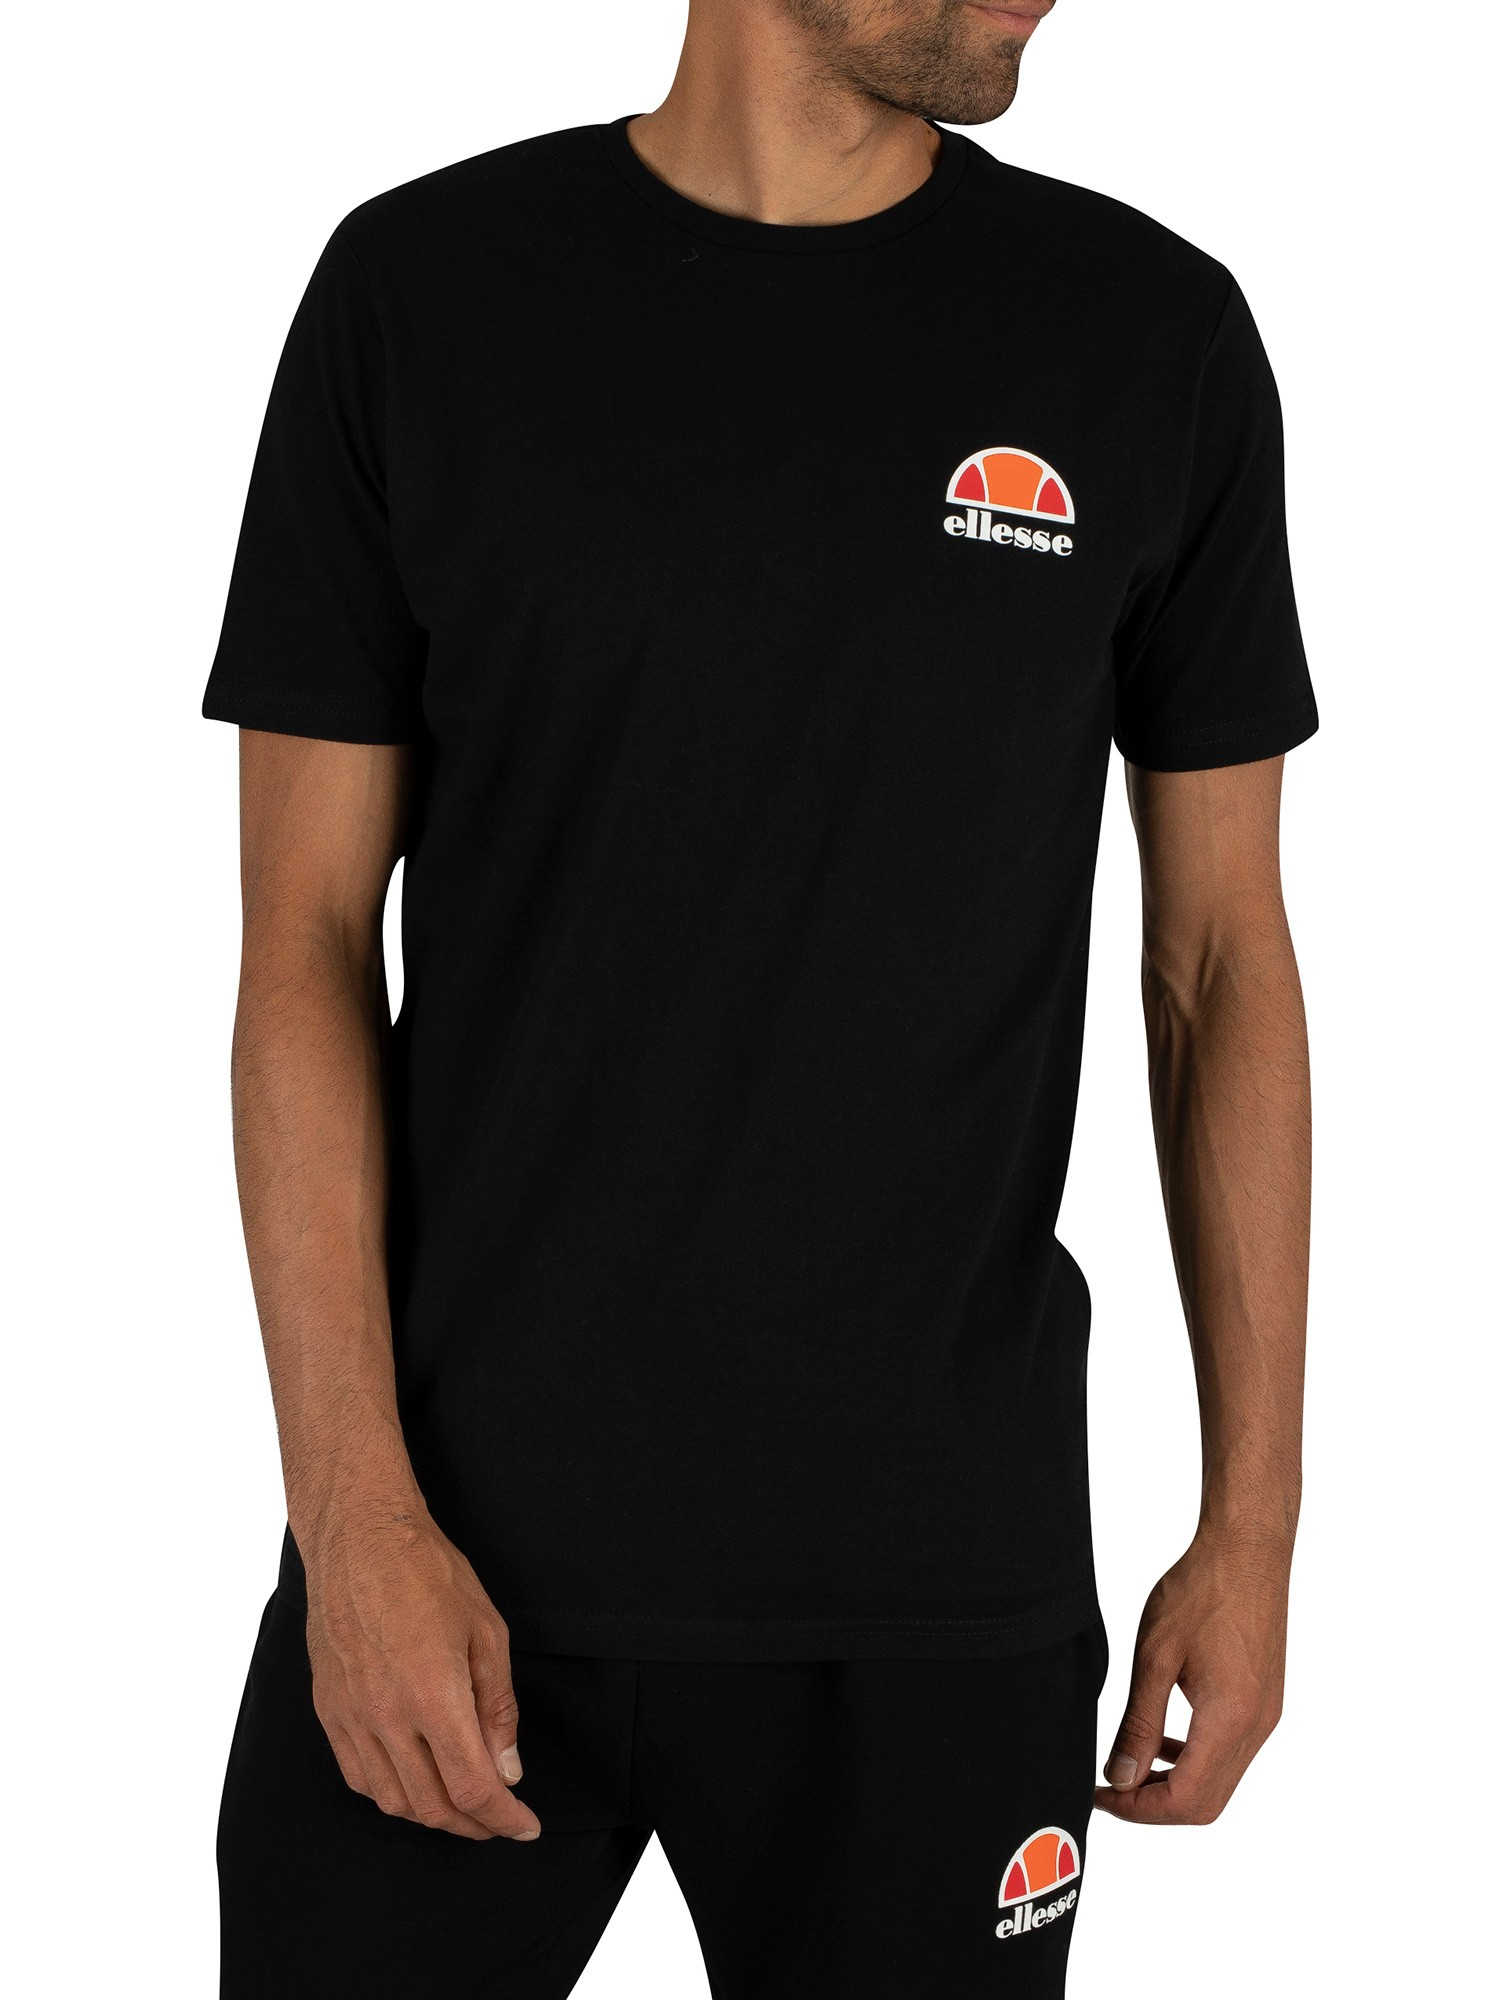 Ellesse Canaletto T-Shirt - Anthracite